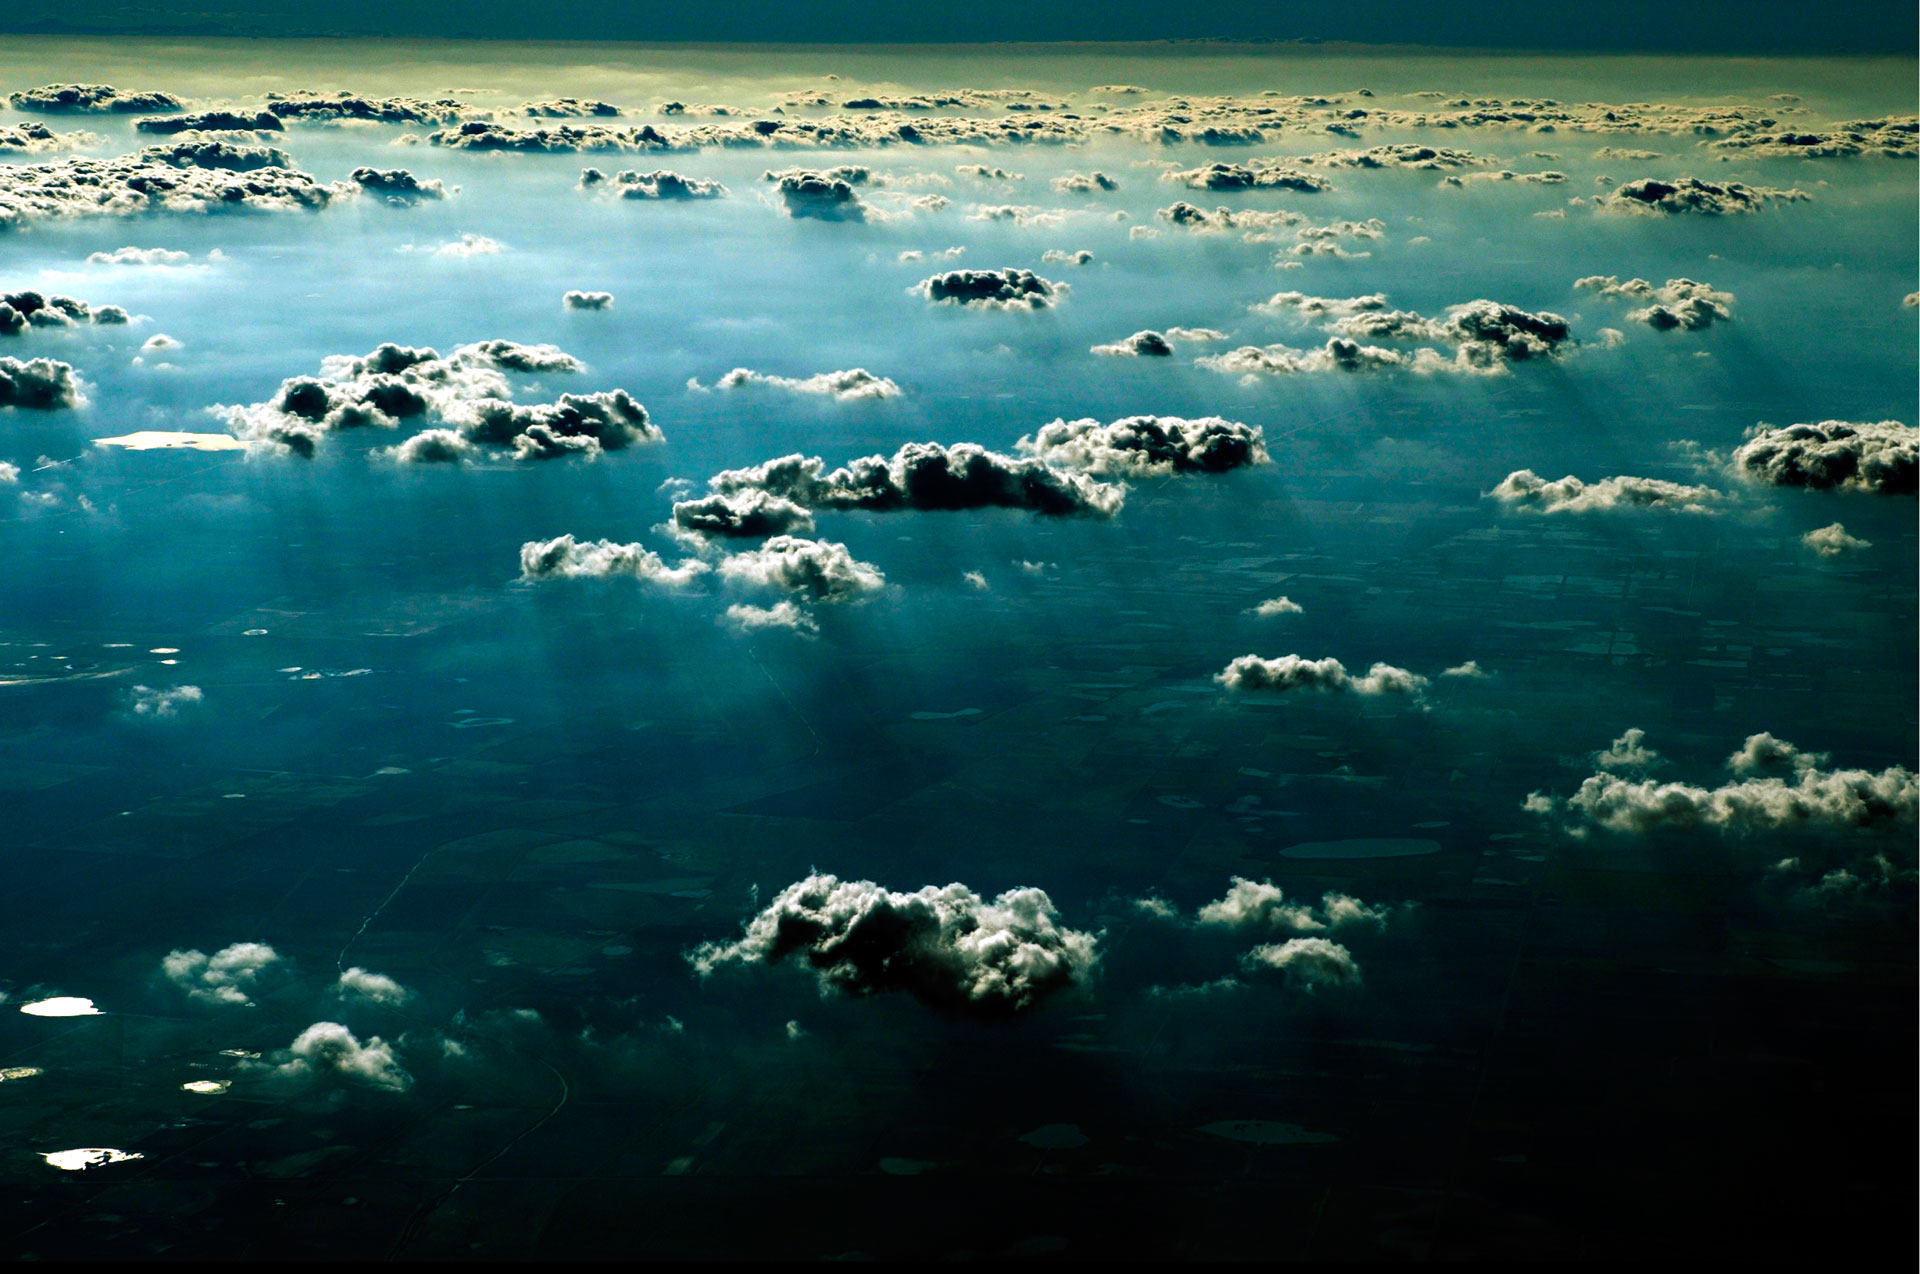 Jason Florio photography prints -color image of the clouds, blue sky, photographed from a plane, flying over Texas